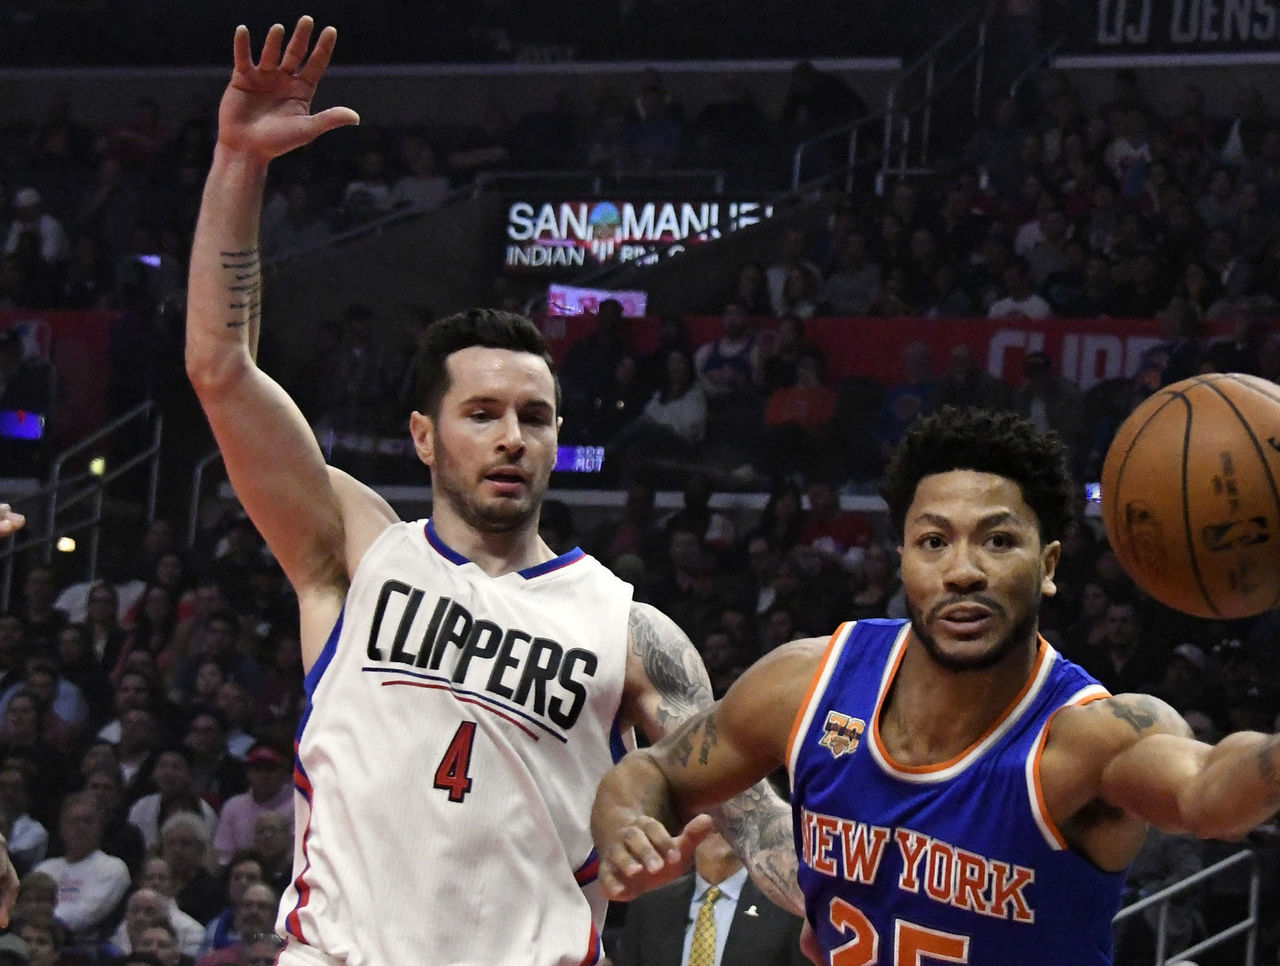 Cropped_2017-03-21t031014z_1766513311_nocid_rtrmadp_3_nba-new-york-knicks-at-los-angeles-clippers